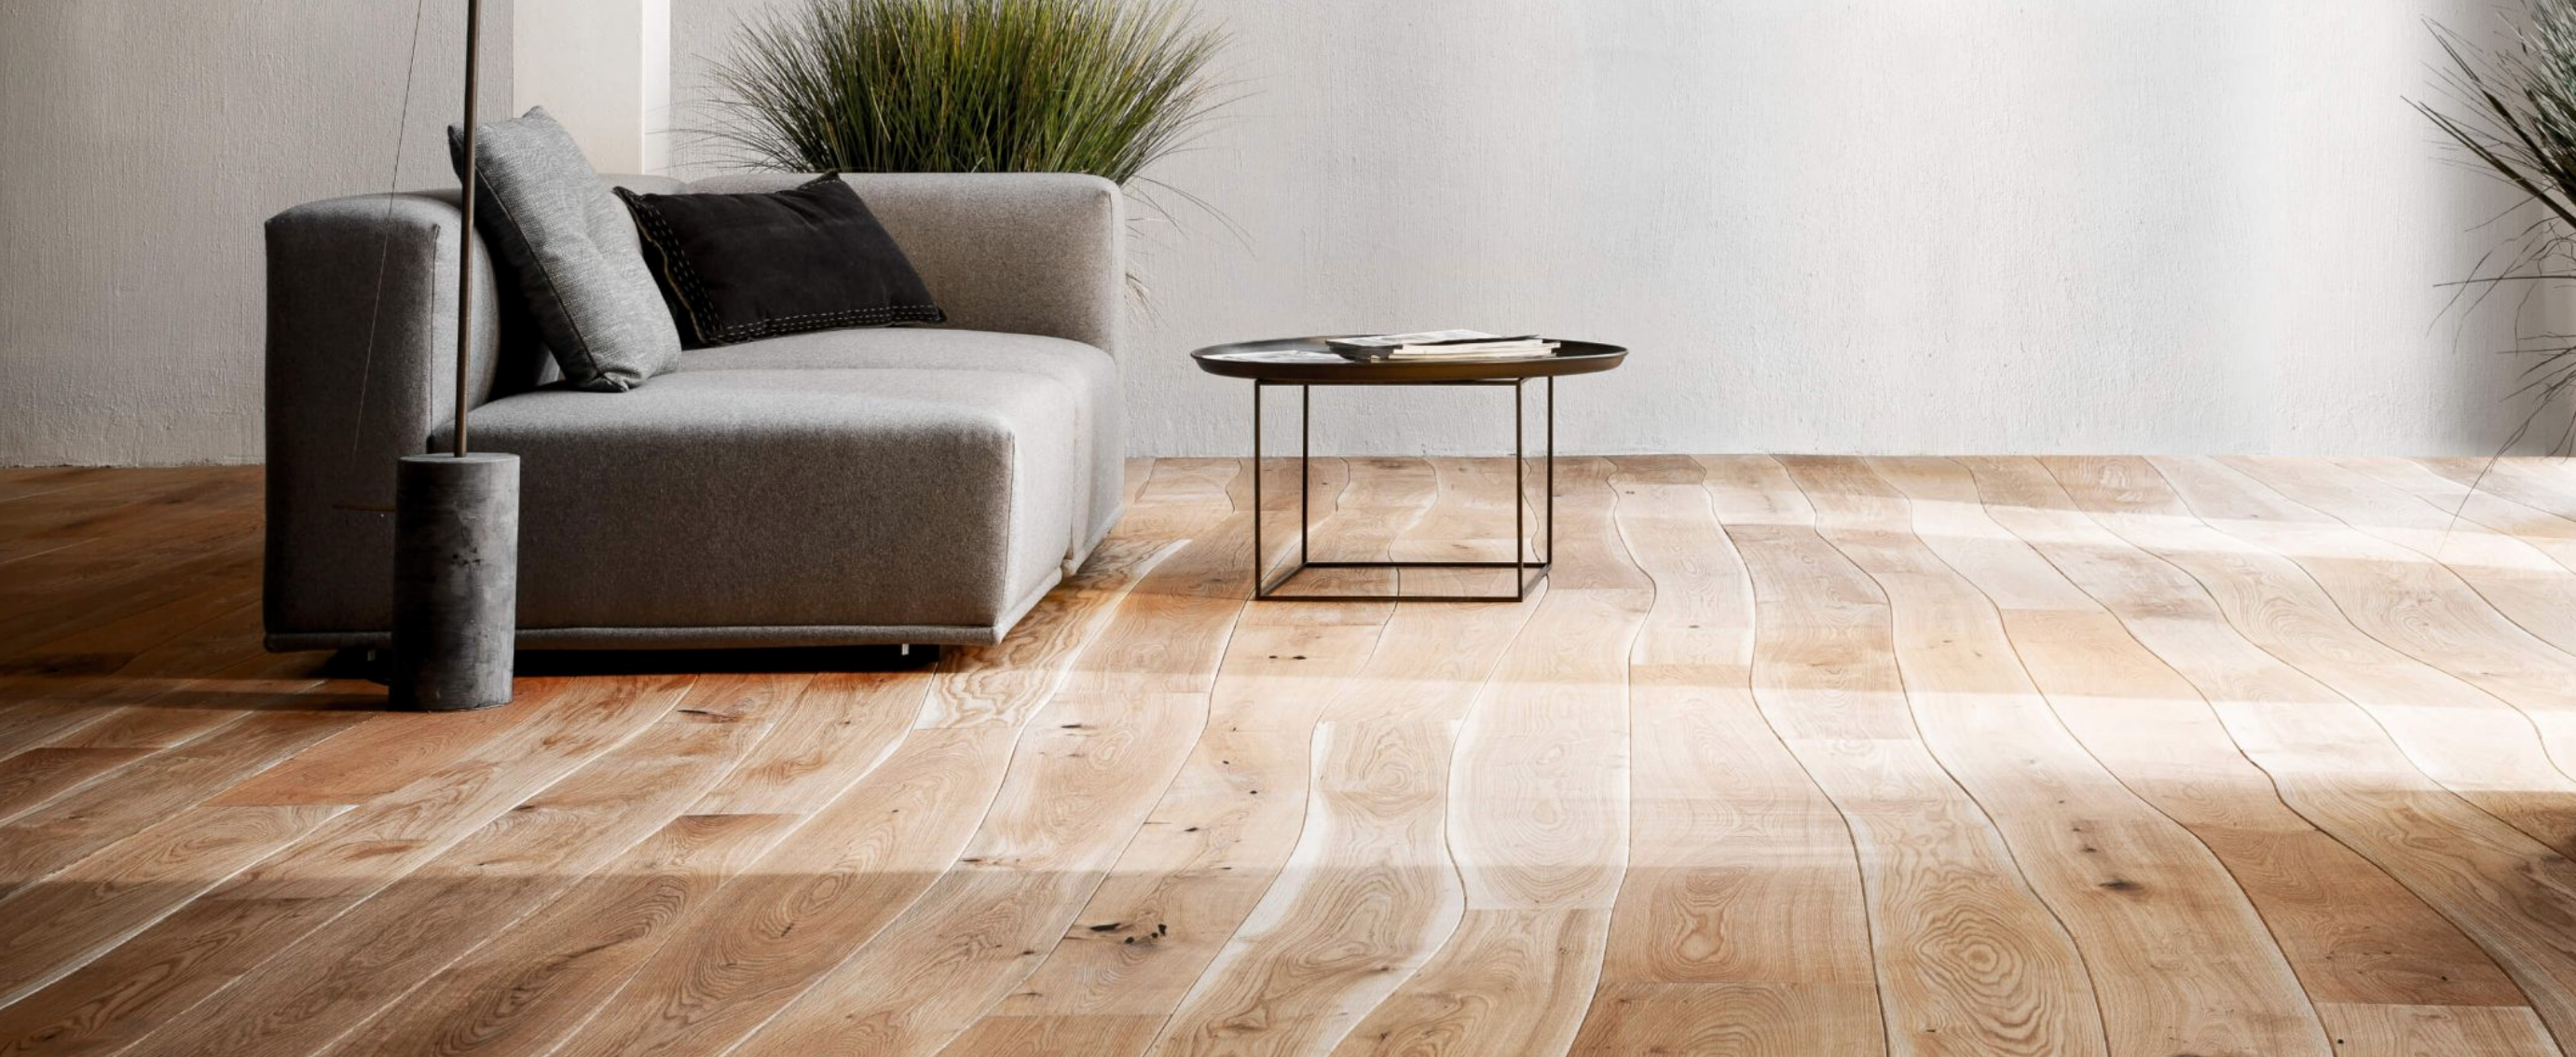 Curved wooden flooring, a great option for a biophilic design.